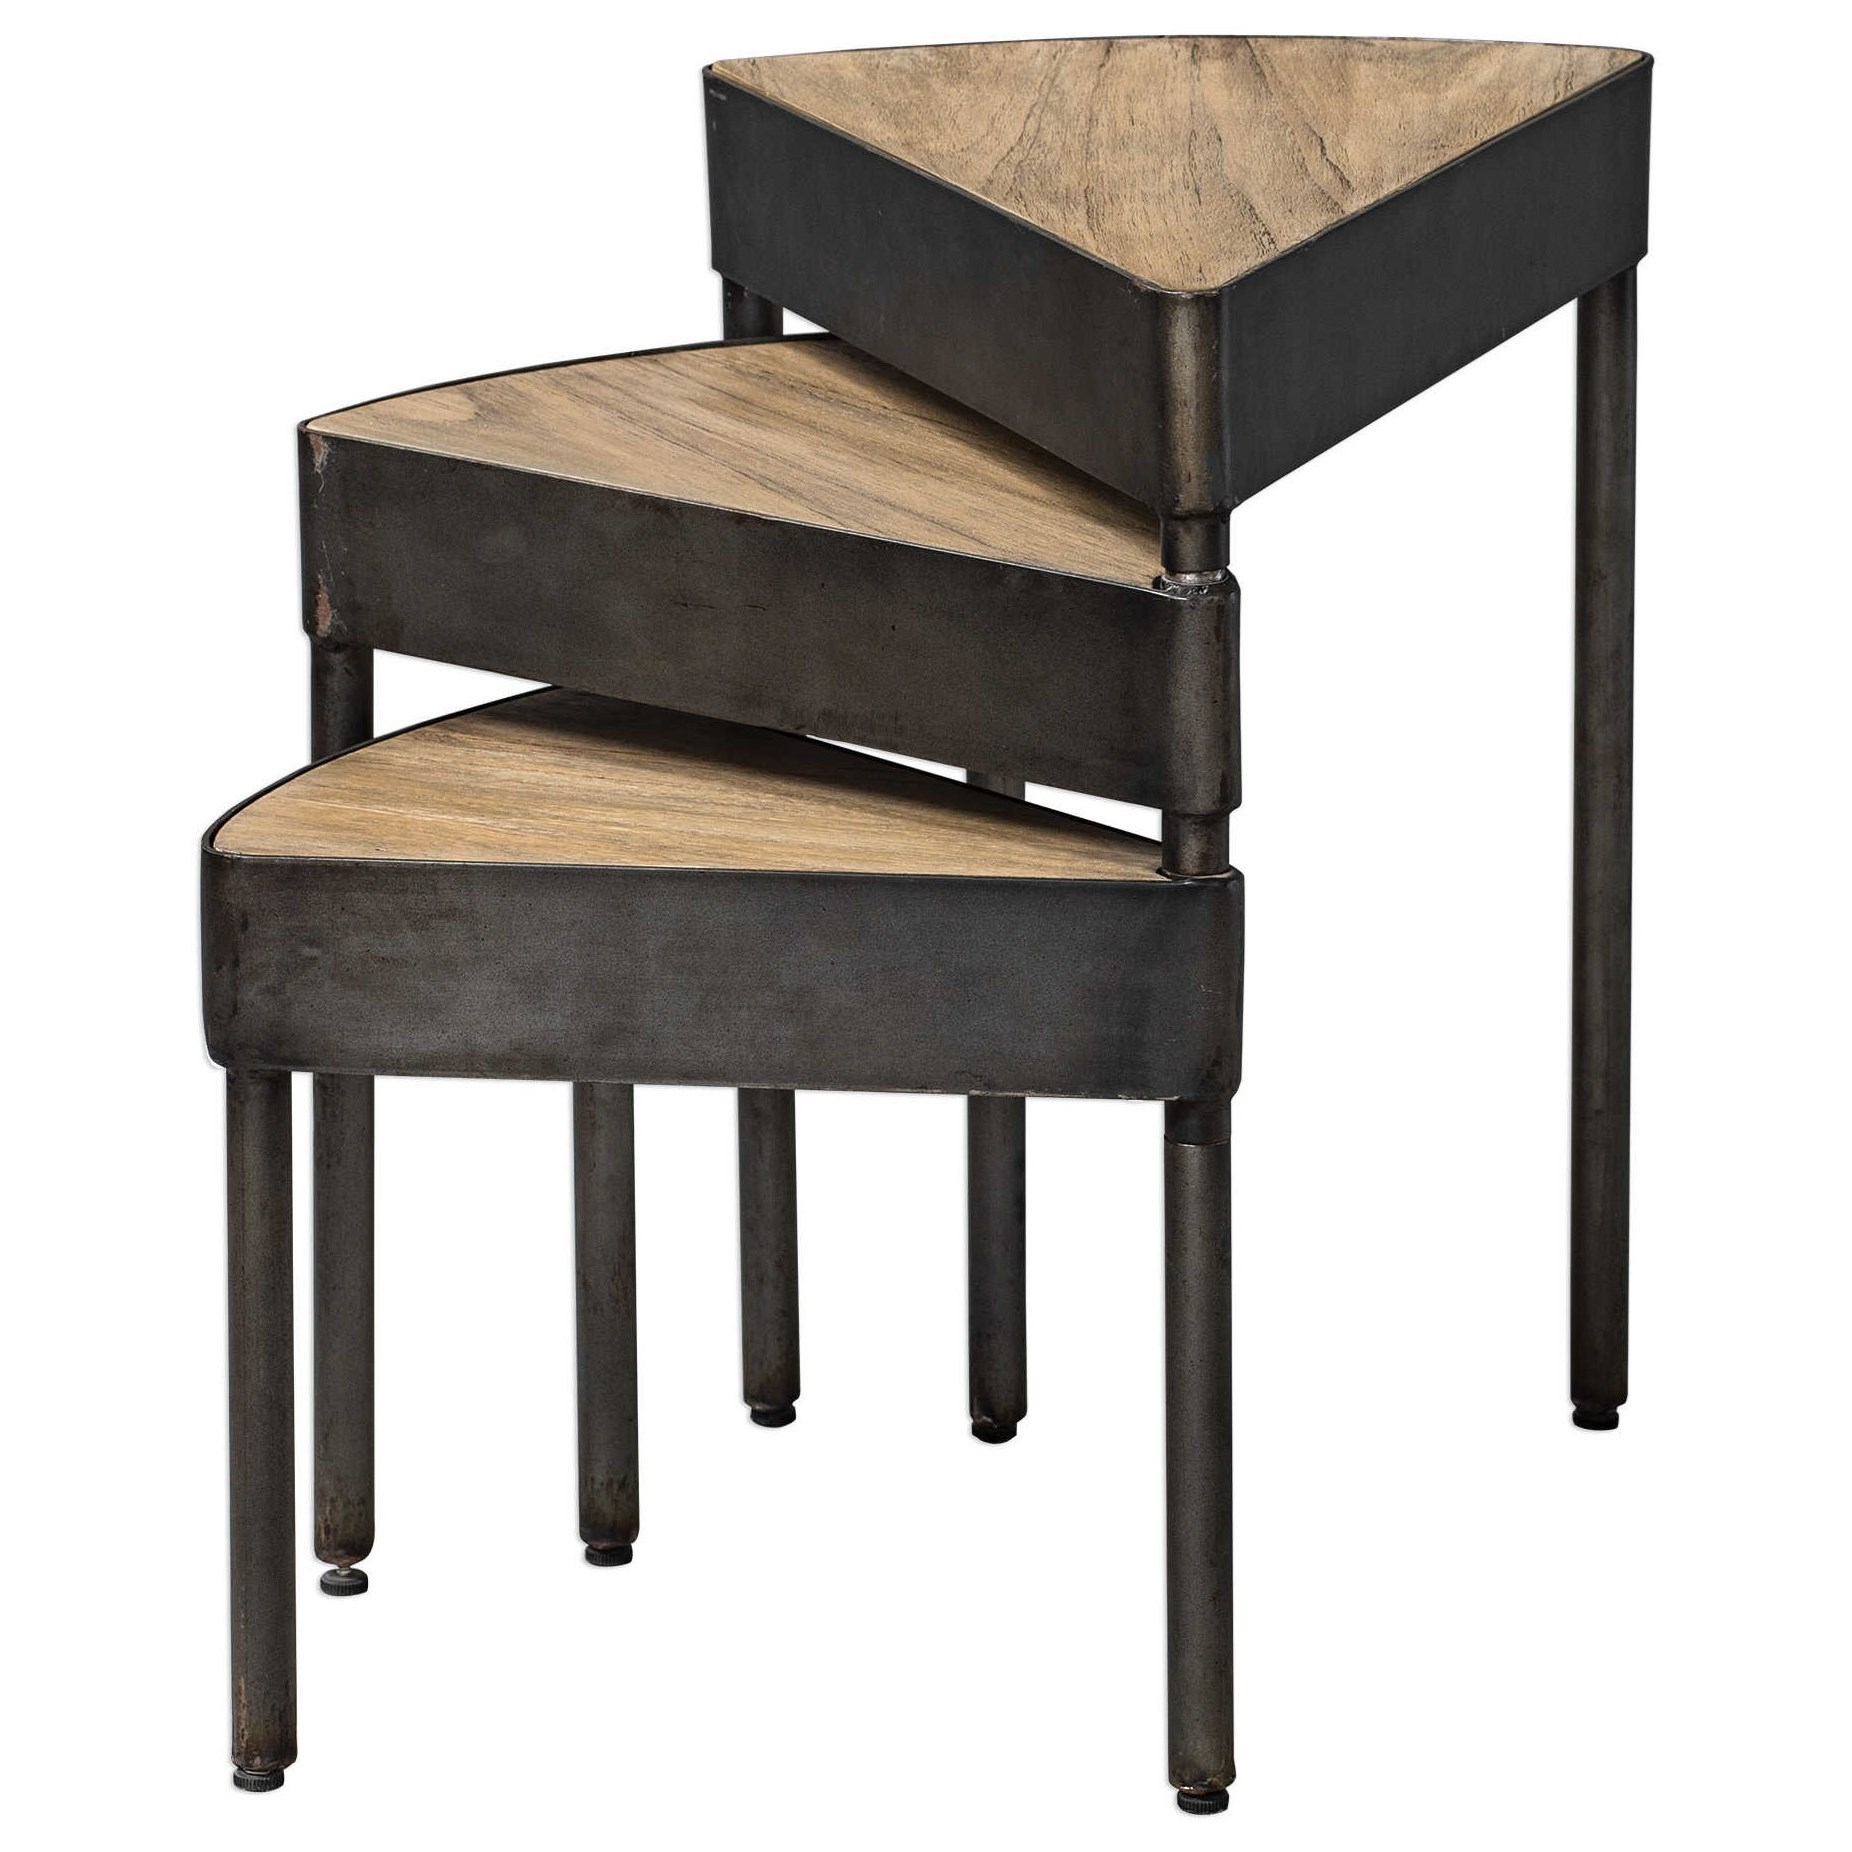 Accent Furniture - Occasional Tables Akito Nesting Table by Uttermost at Rooms for Less